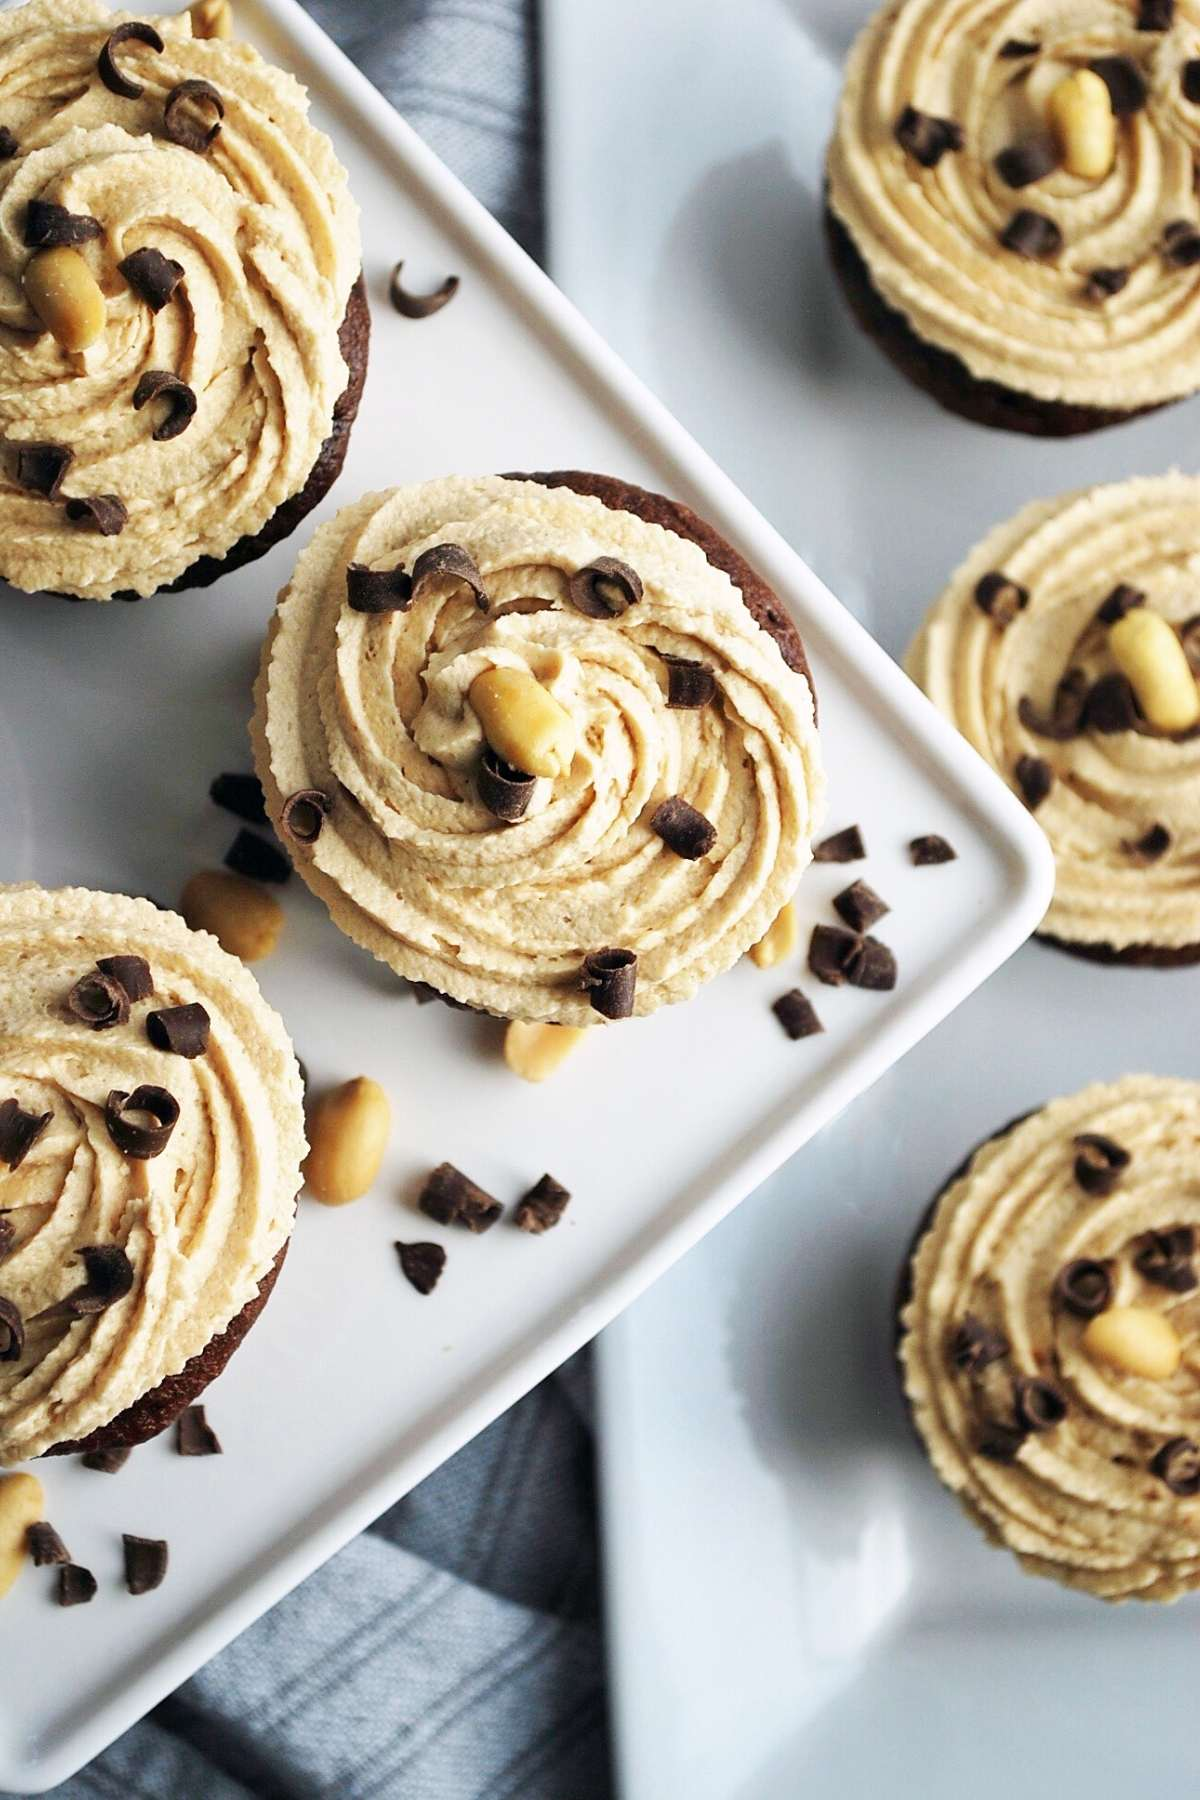 overhead photo looking down on a platter of frosted cupcakes topped with chocolate shavings